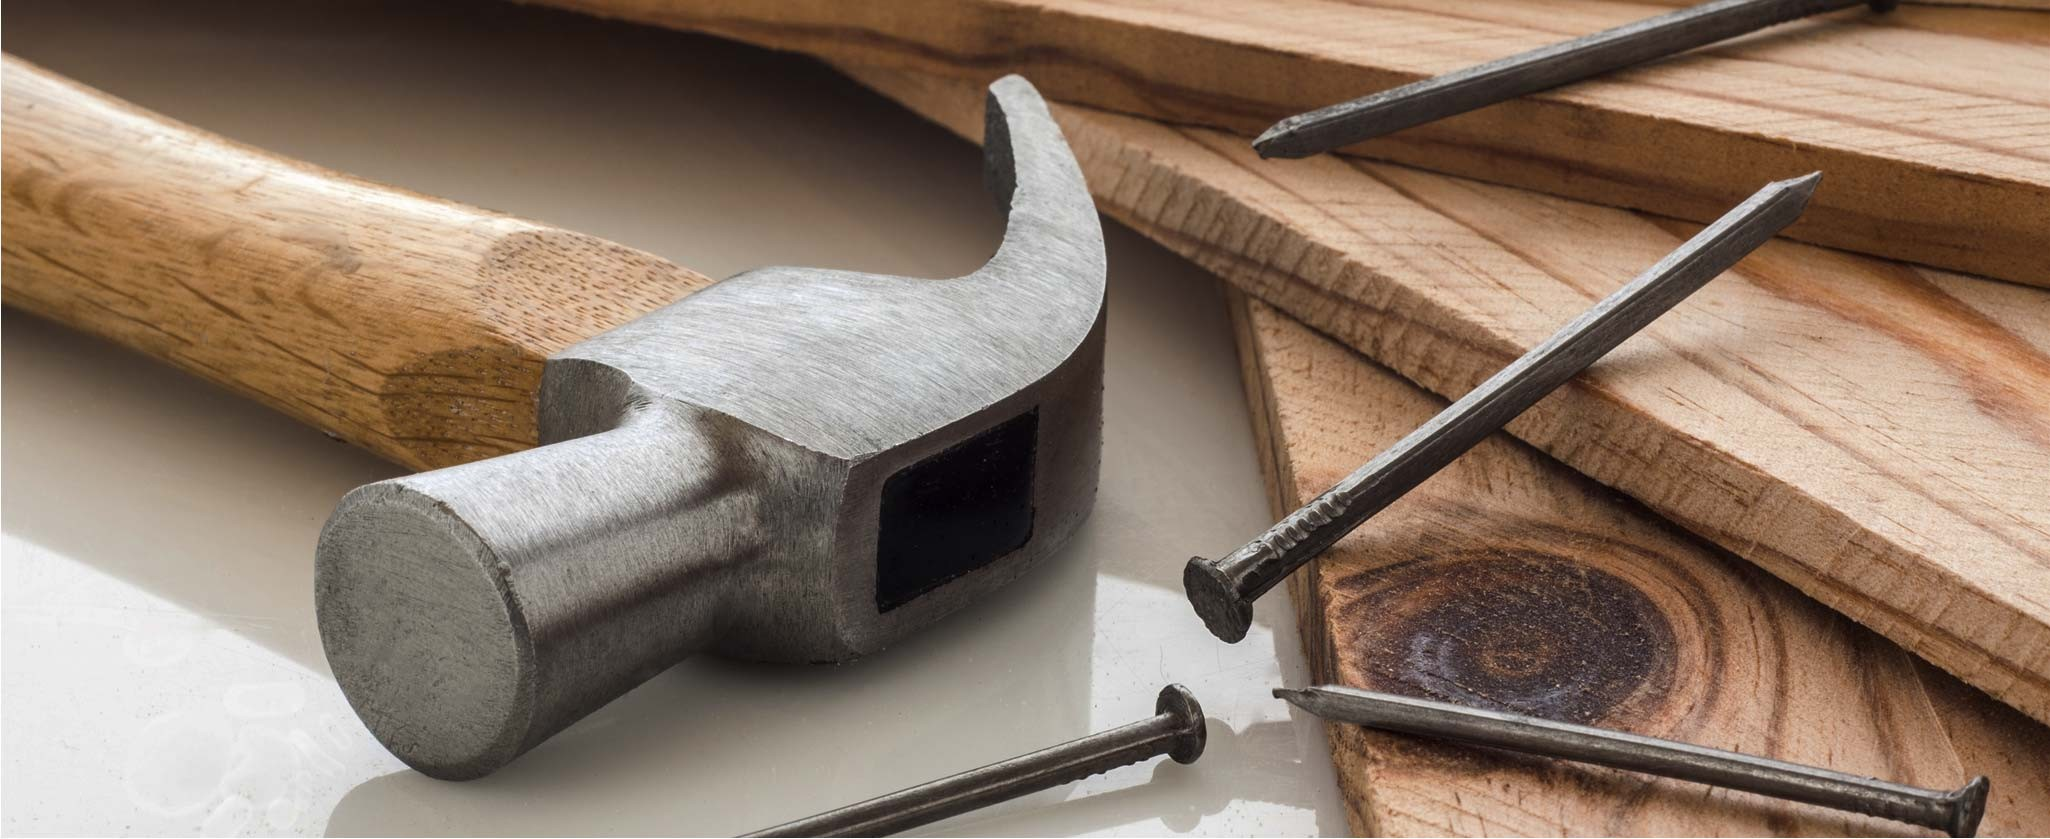 Campus handyman full service remodeling emergency for House remodeling tools